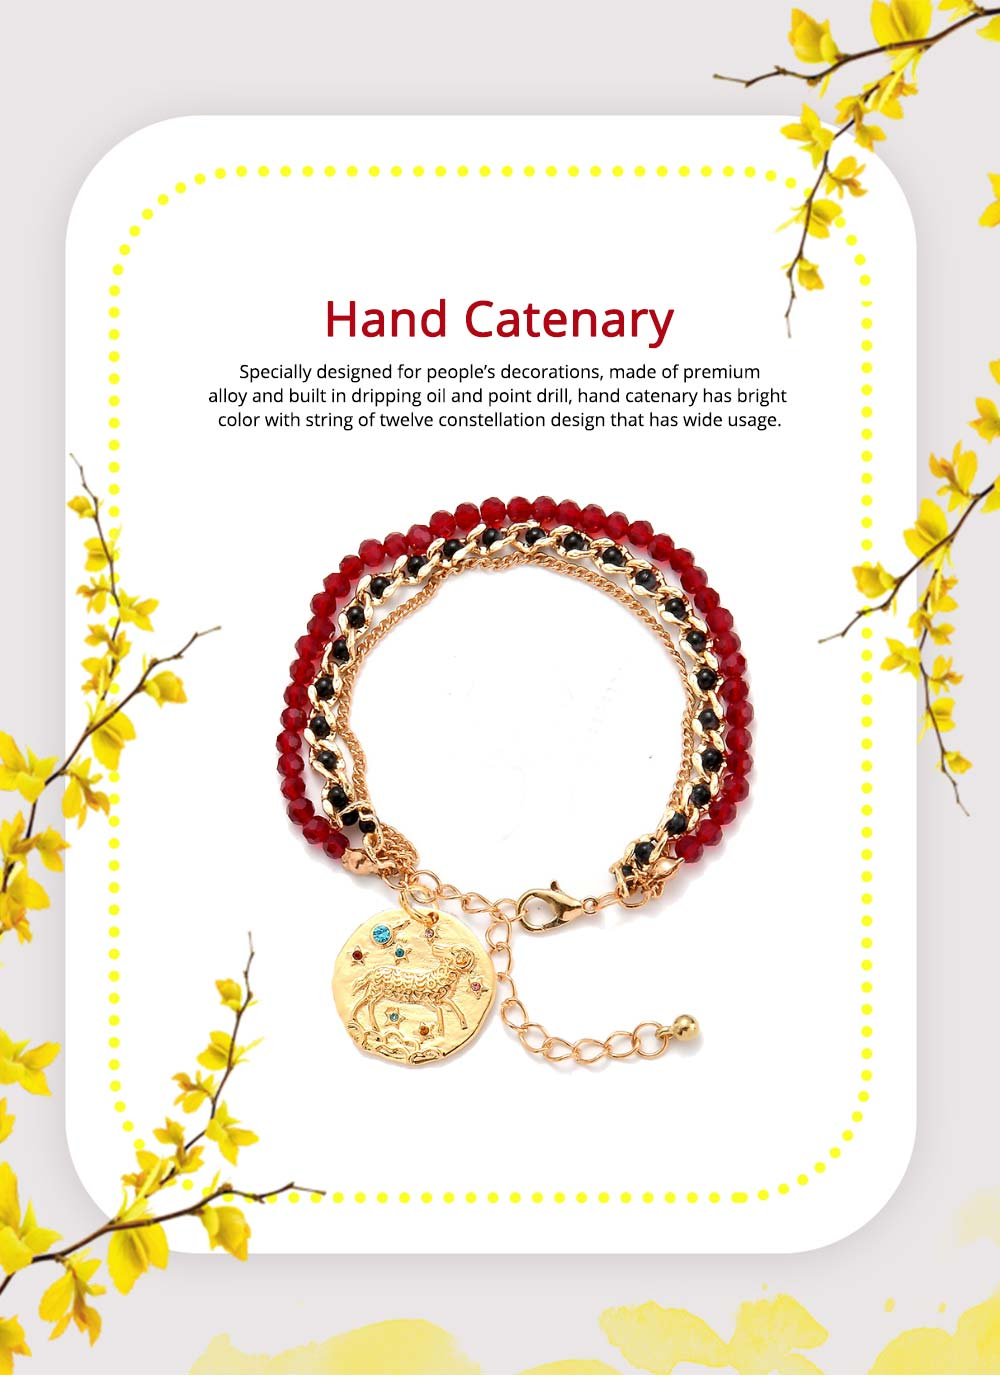 Zodiac Constellation Bracelet, Drill String With Alloy Insert Hand Catenary 0